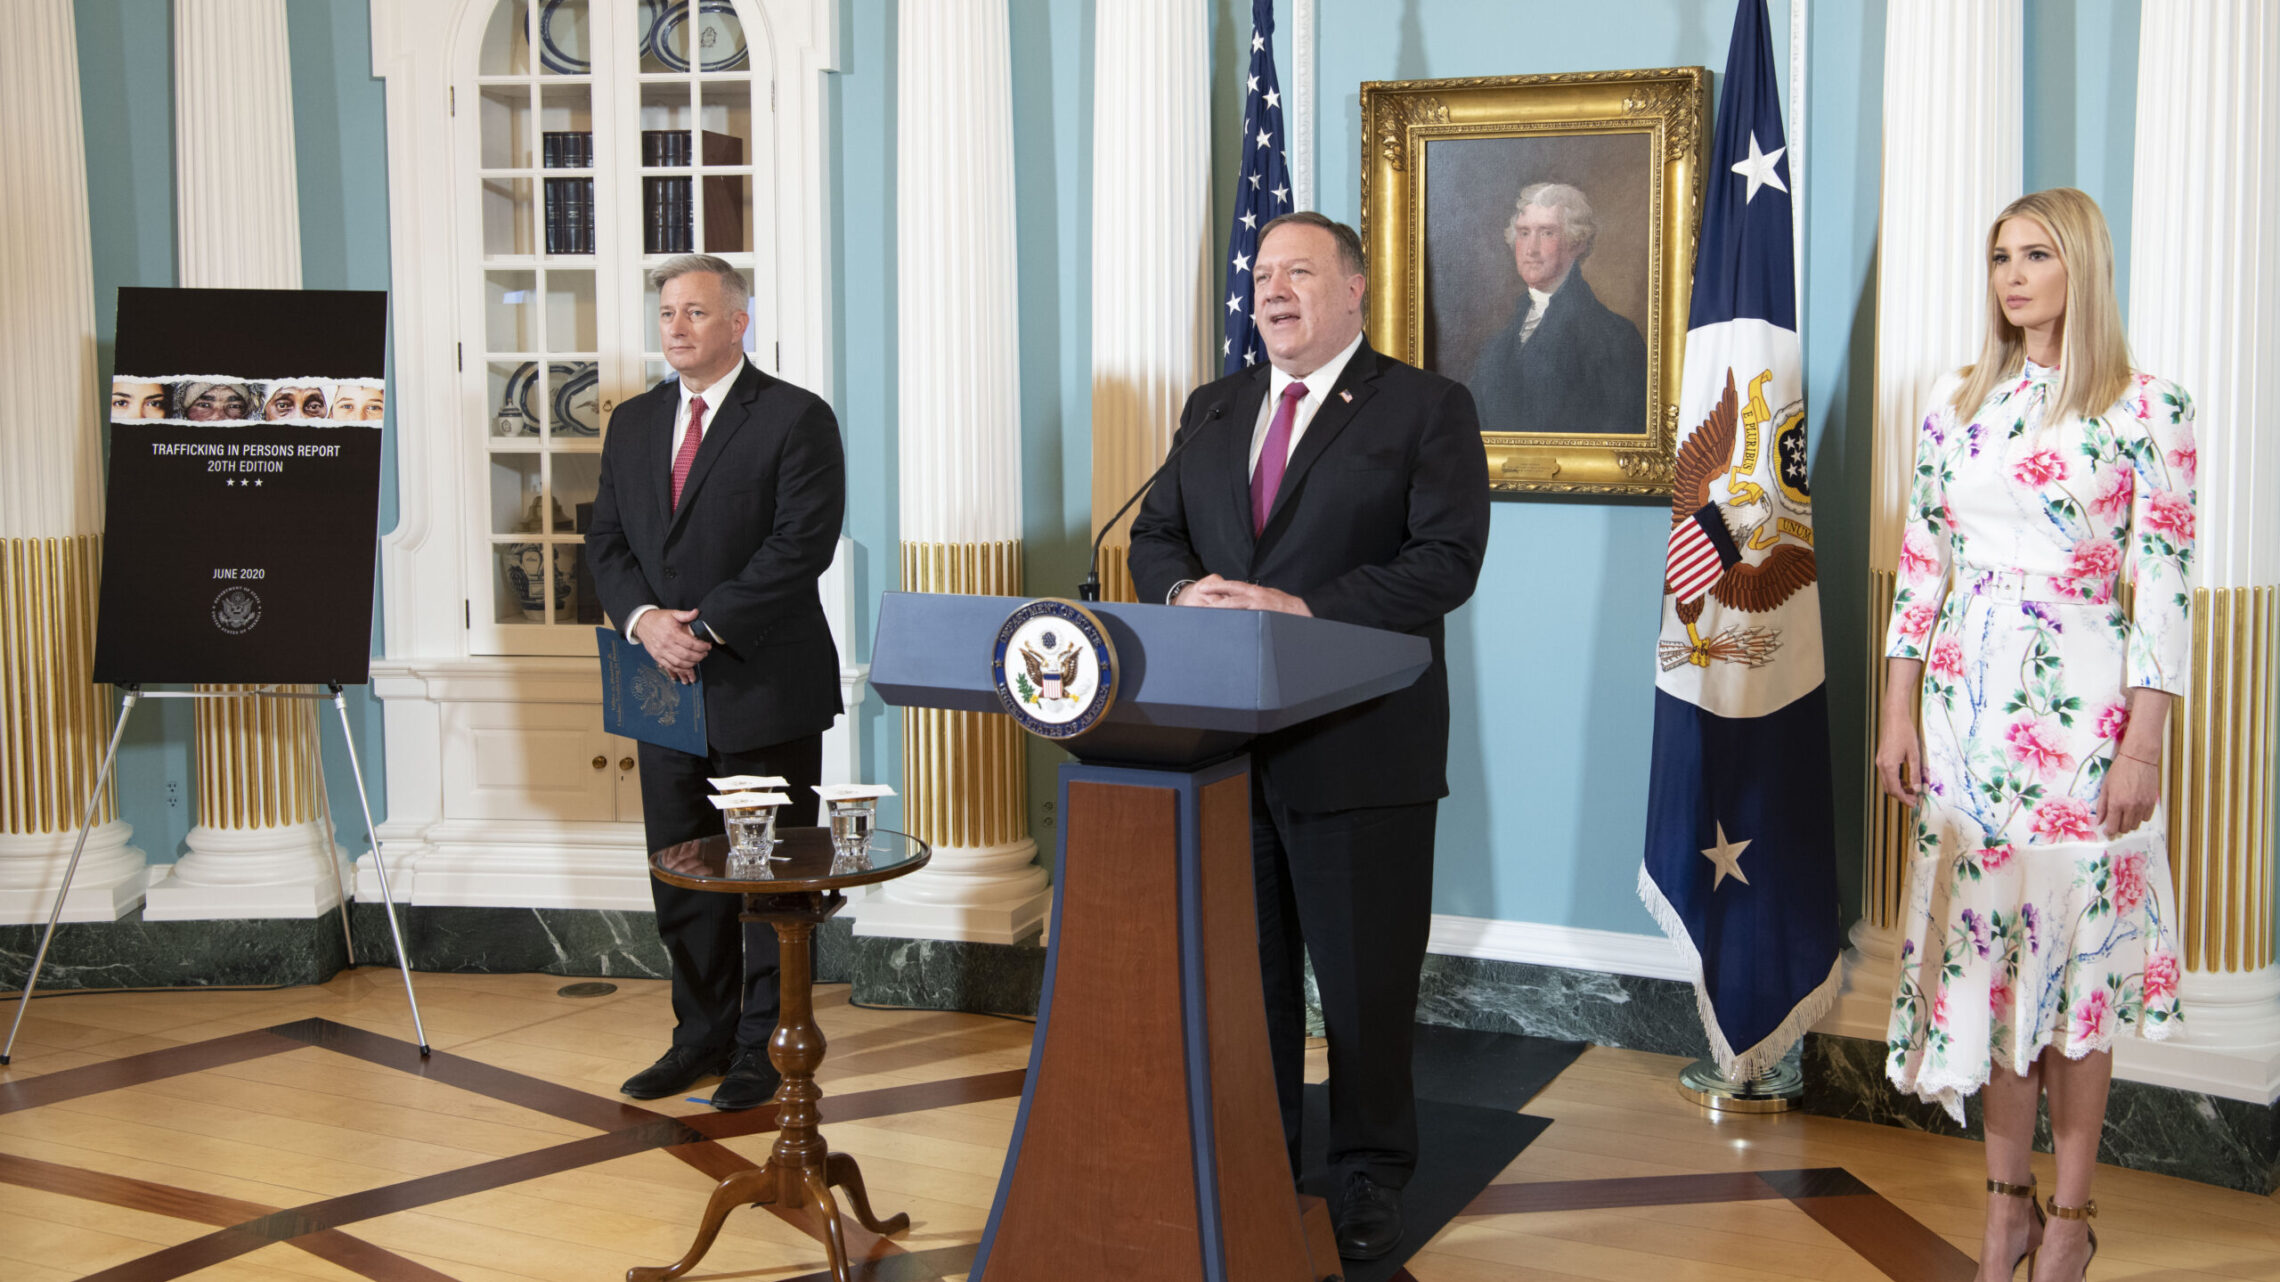 Secretary Pompeo delivers remarks on the virtual release of the 2020 Trafficking in Persons Report on June 25, 2020. [State Department Photo by Freddie Everett/Public Domain]